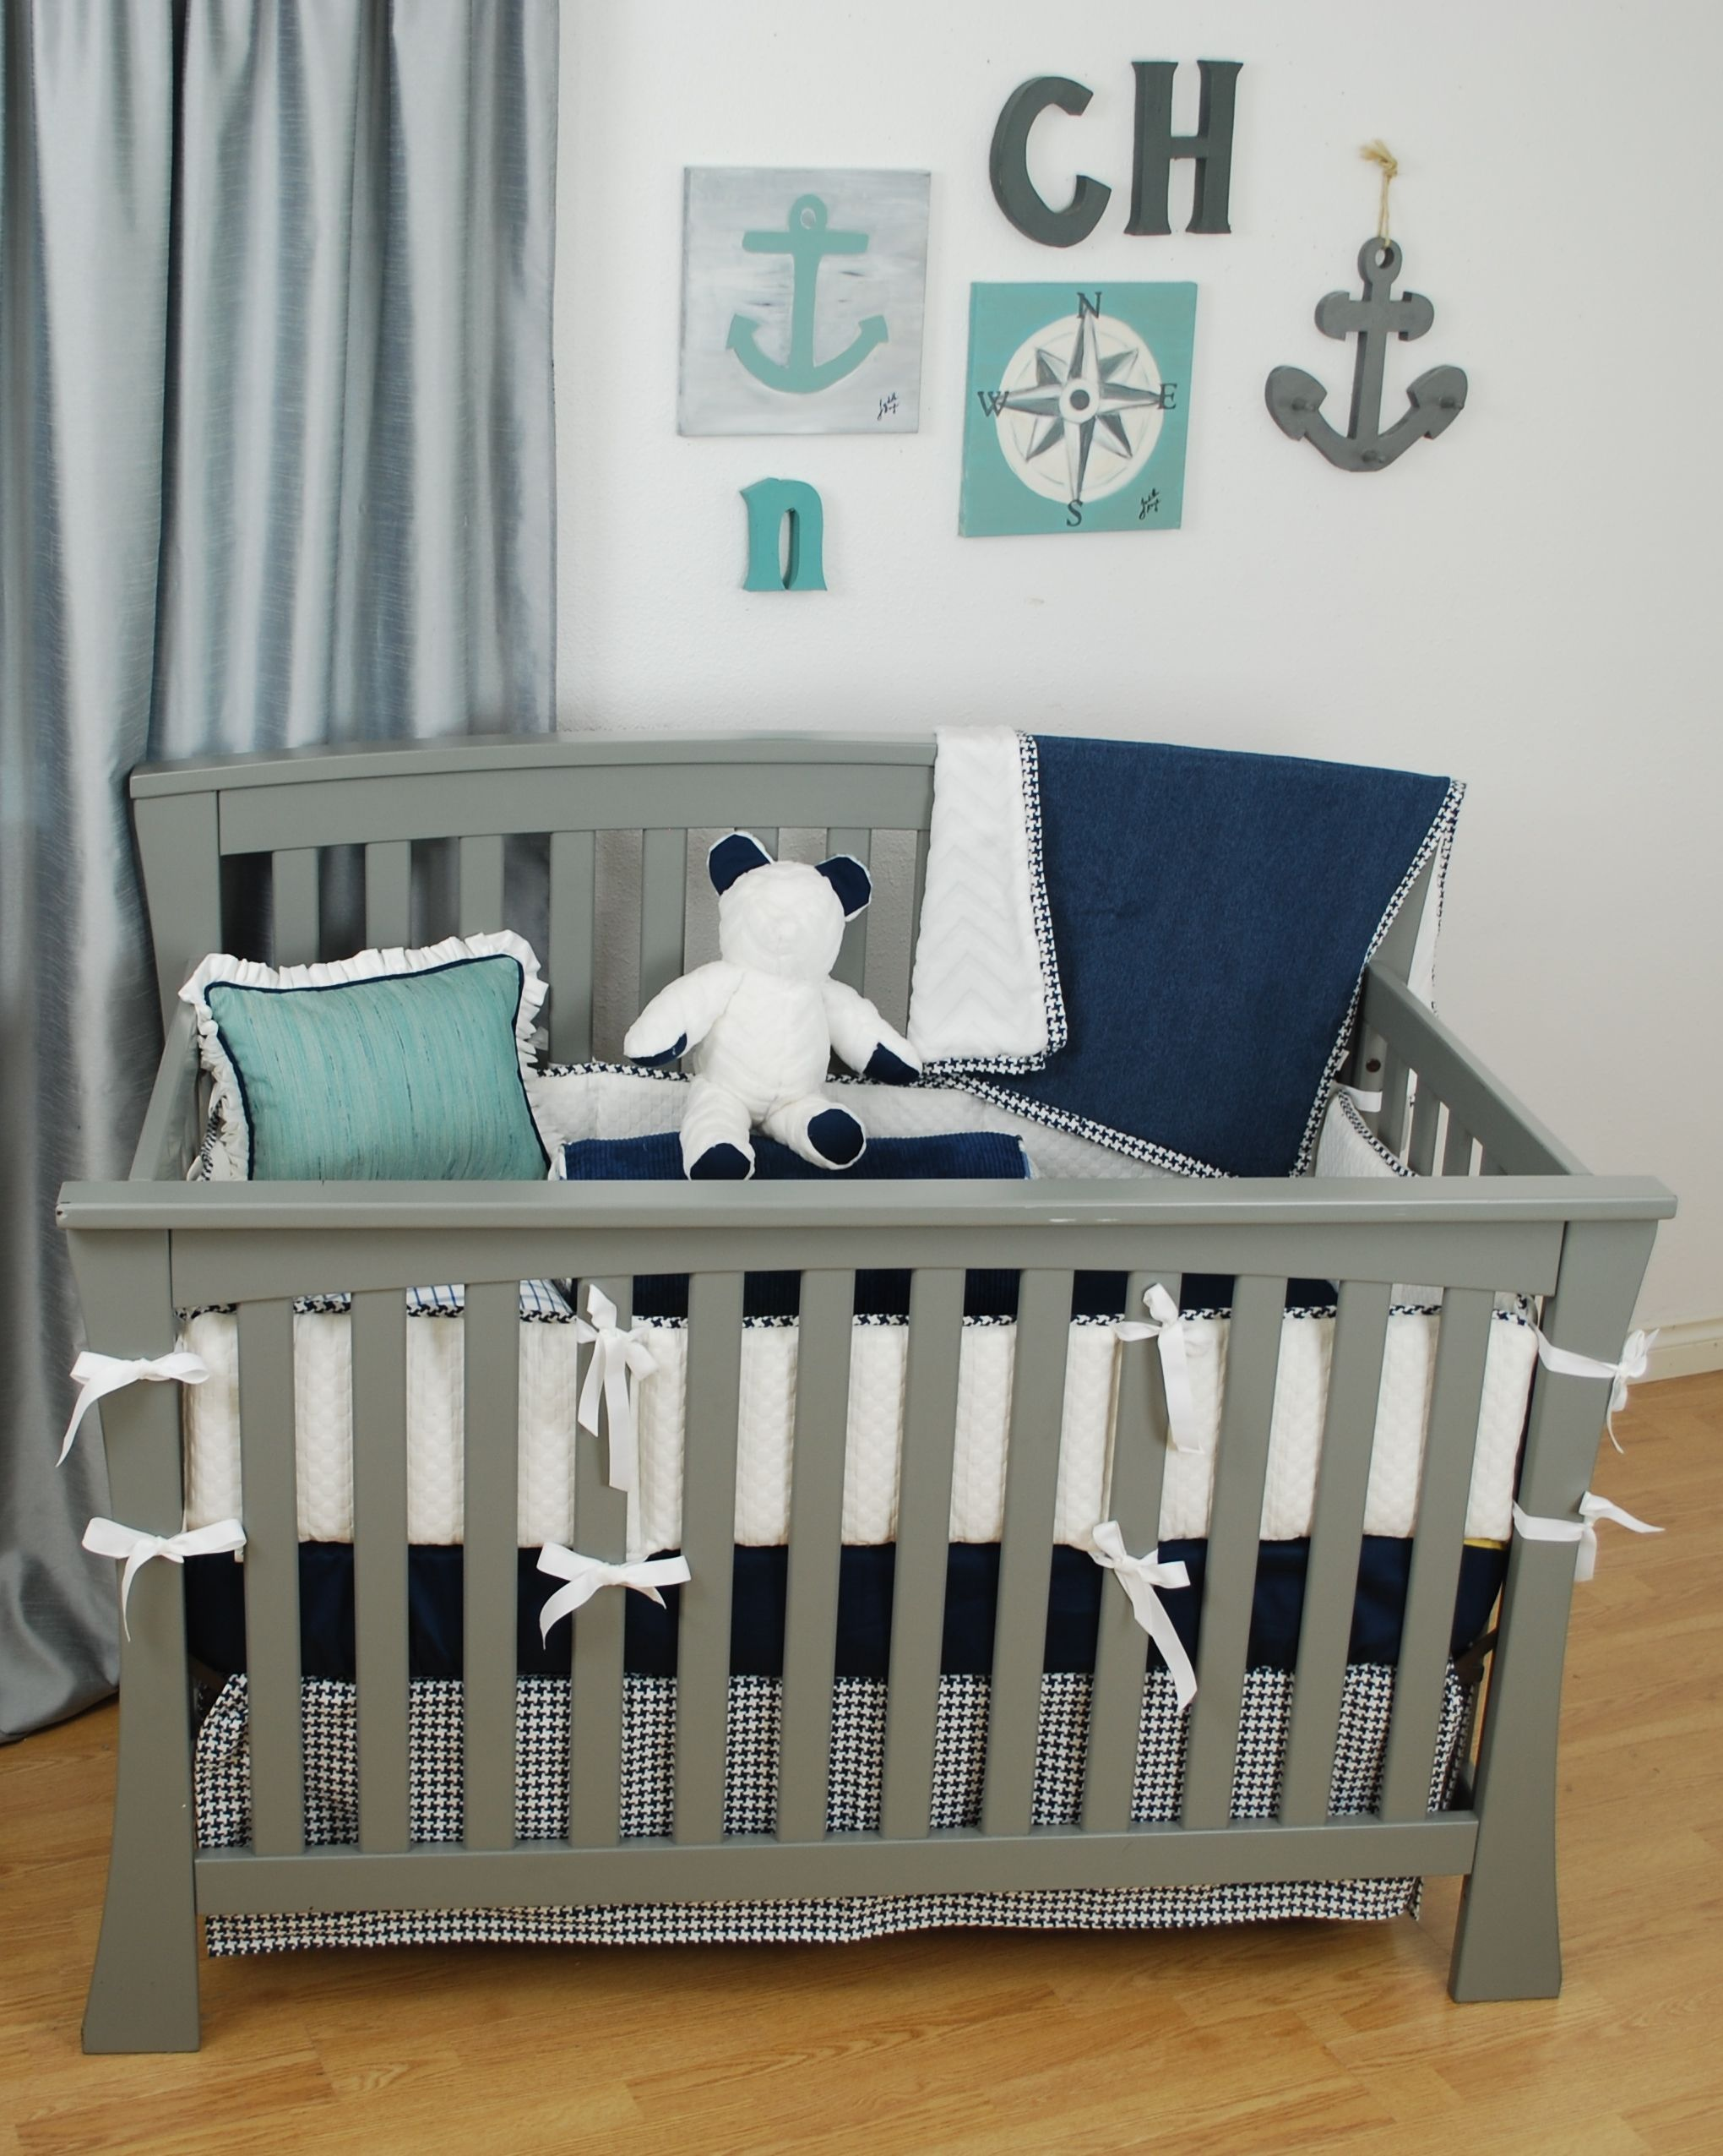 White Crib Bedding With Navy Aqua And Grey Fabrics For A